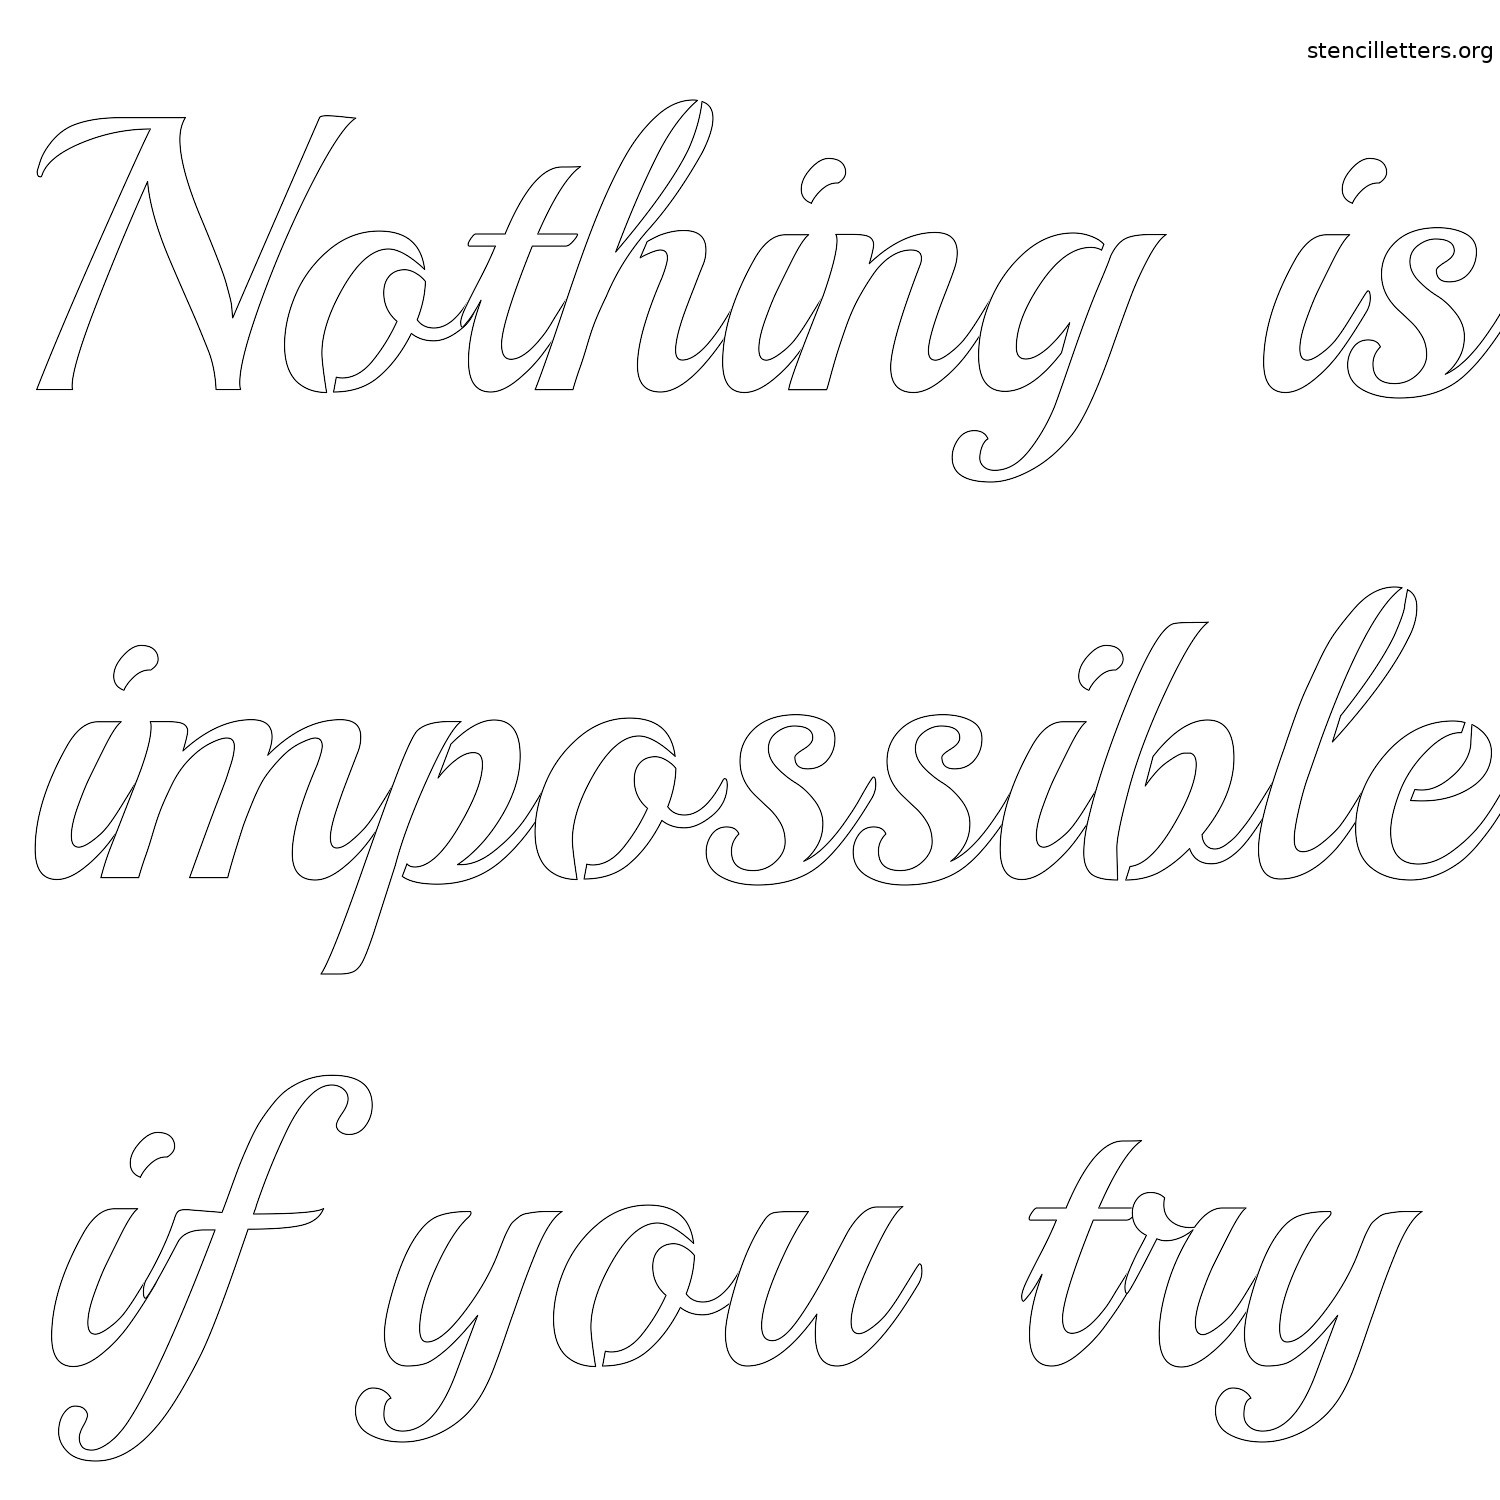 nothing-is-impossible-if-you-try-quote-stencil-outline.jpg